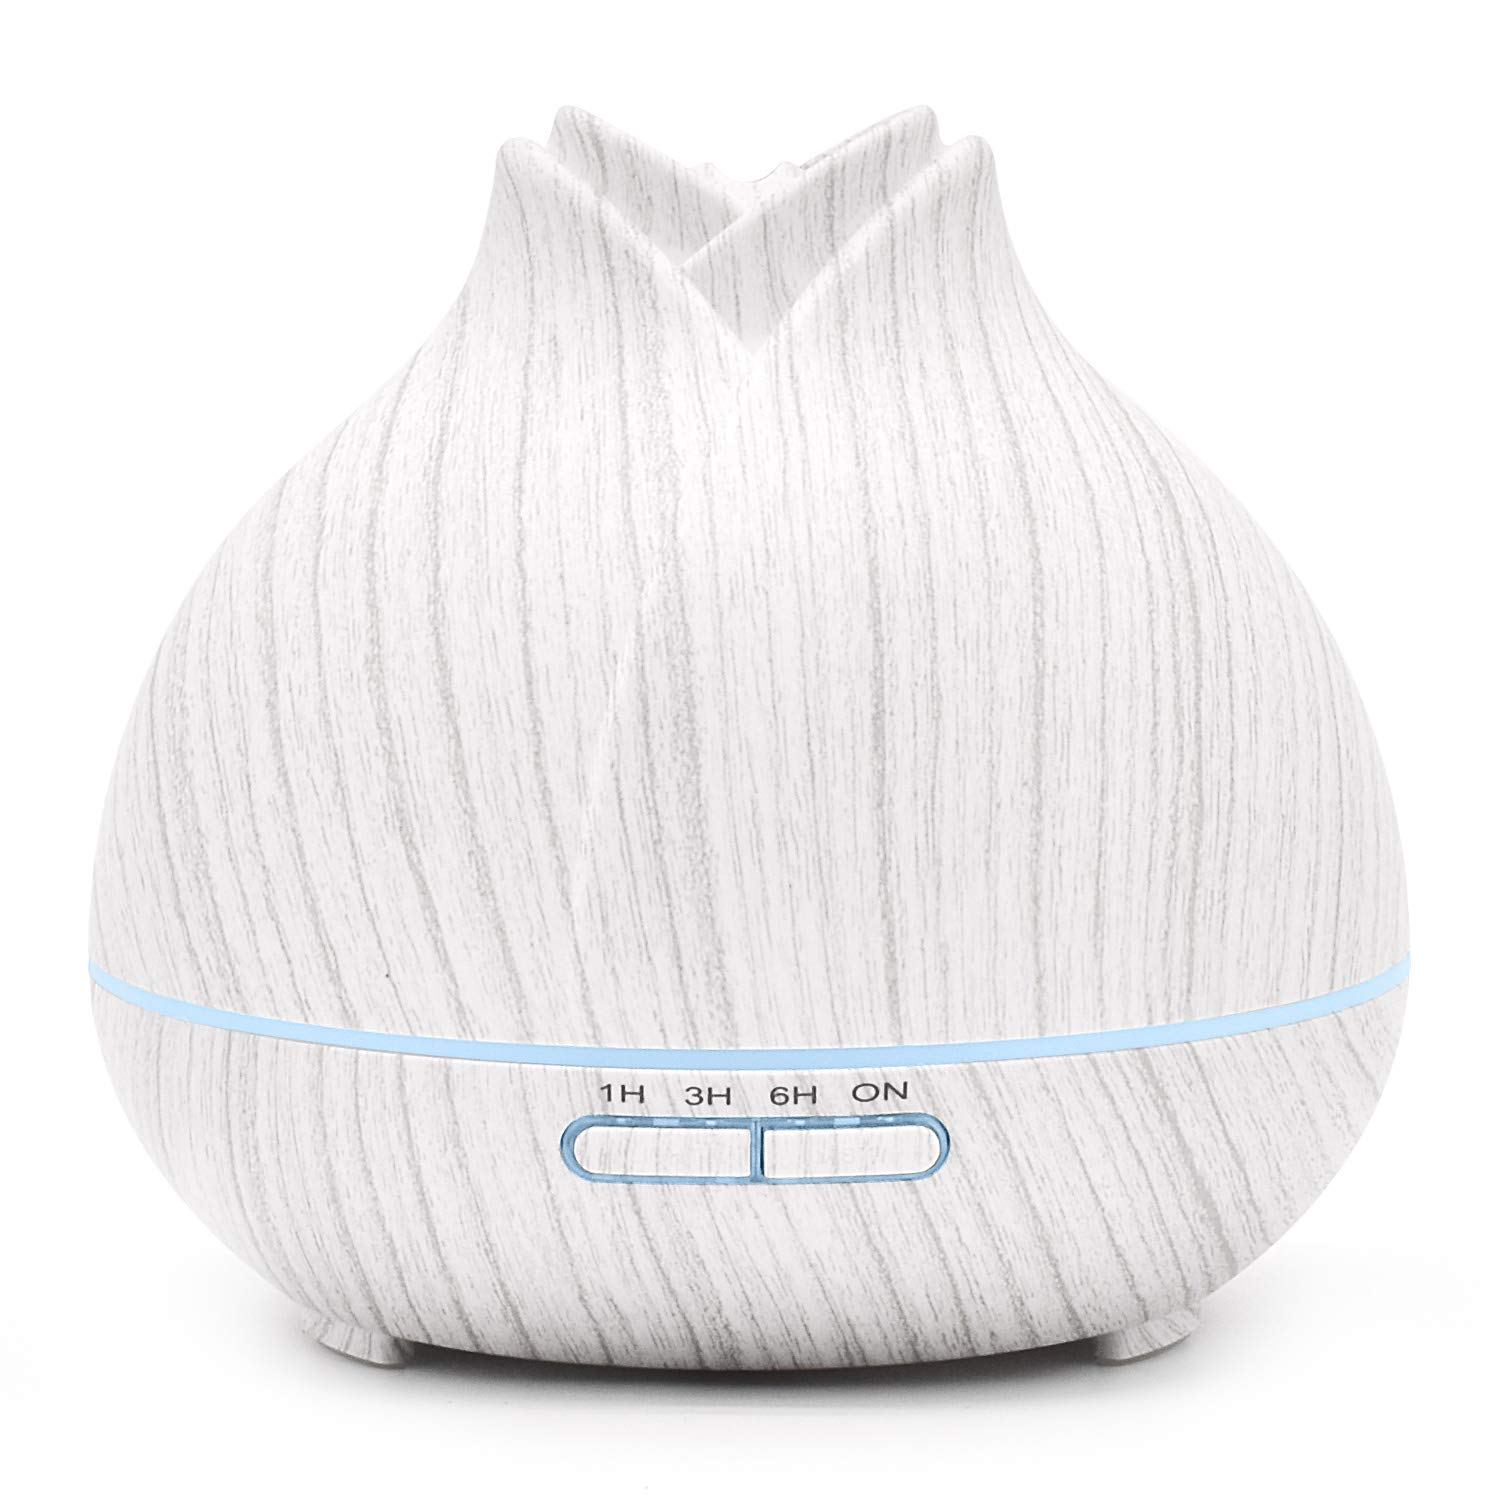 ASAKUKI Essential Oil Diffuser 400ml, Aromatherapy Fragrant Oil Vaporizer Humidifier with Fine Mist. Moisturize skin, Relieve Stress, Purify air with Soothing Night Light for Home Office